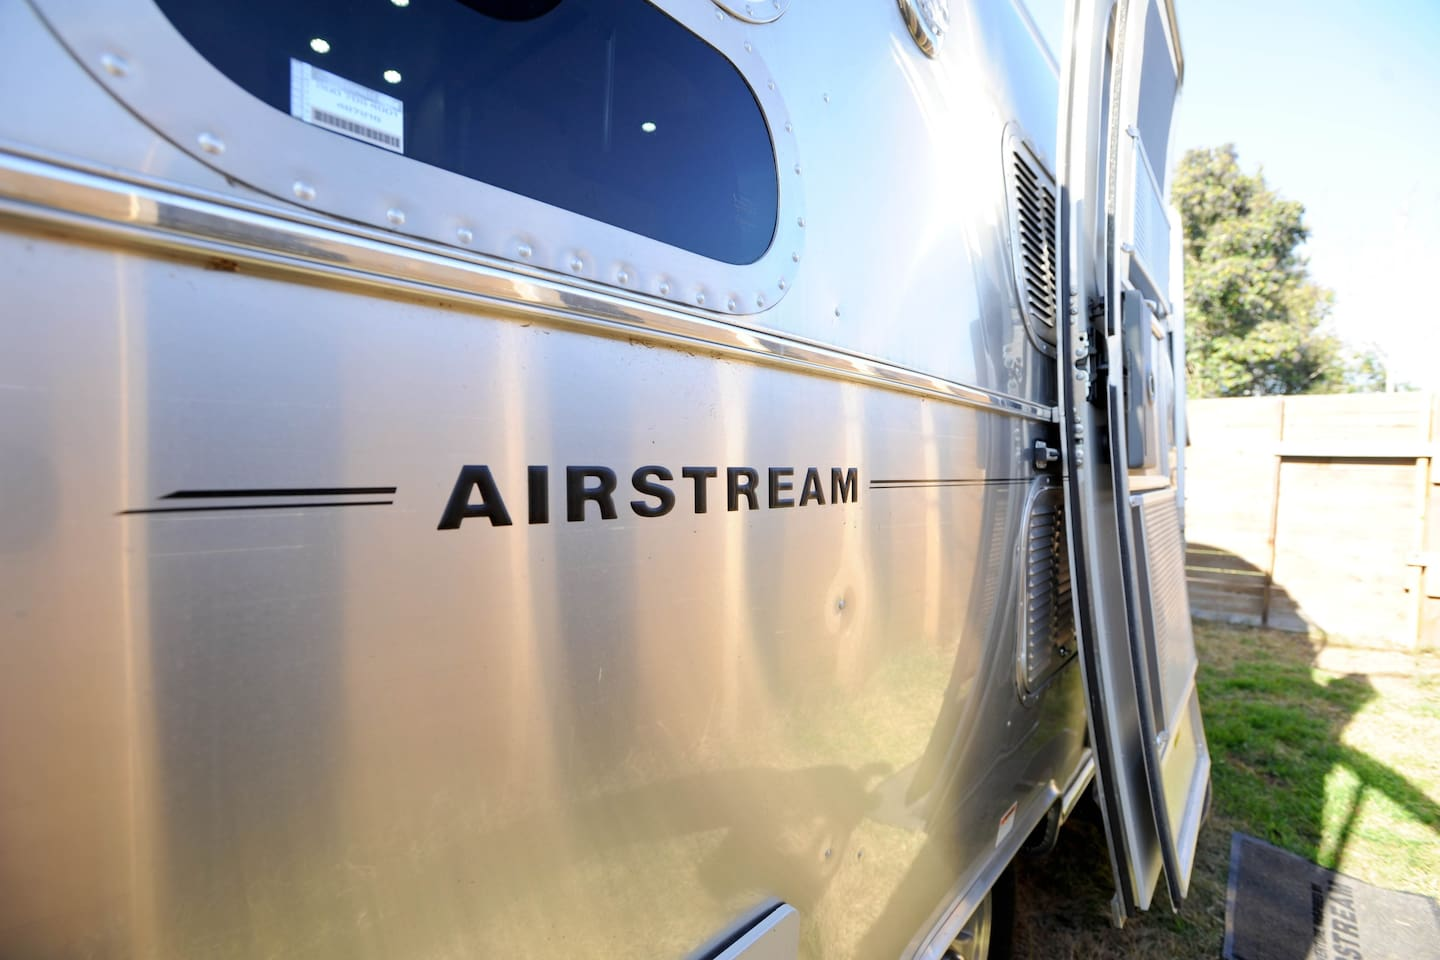 Our 19ft Flying Cloud Airstream!